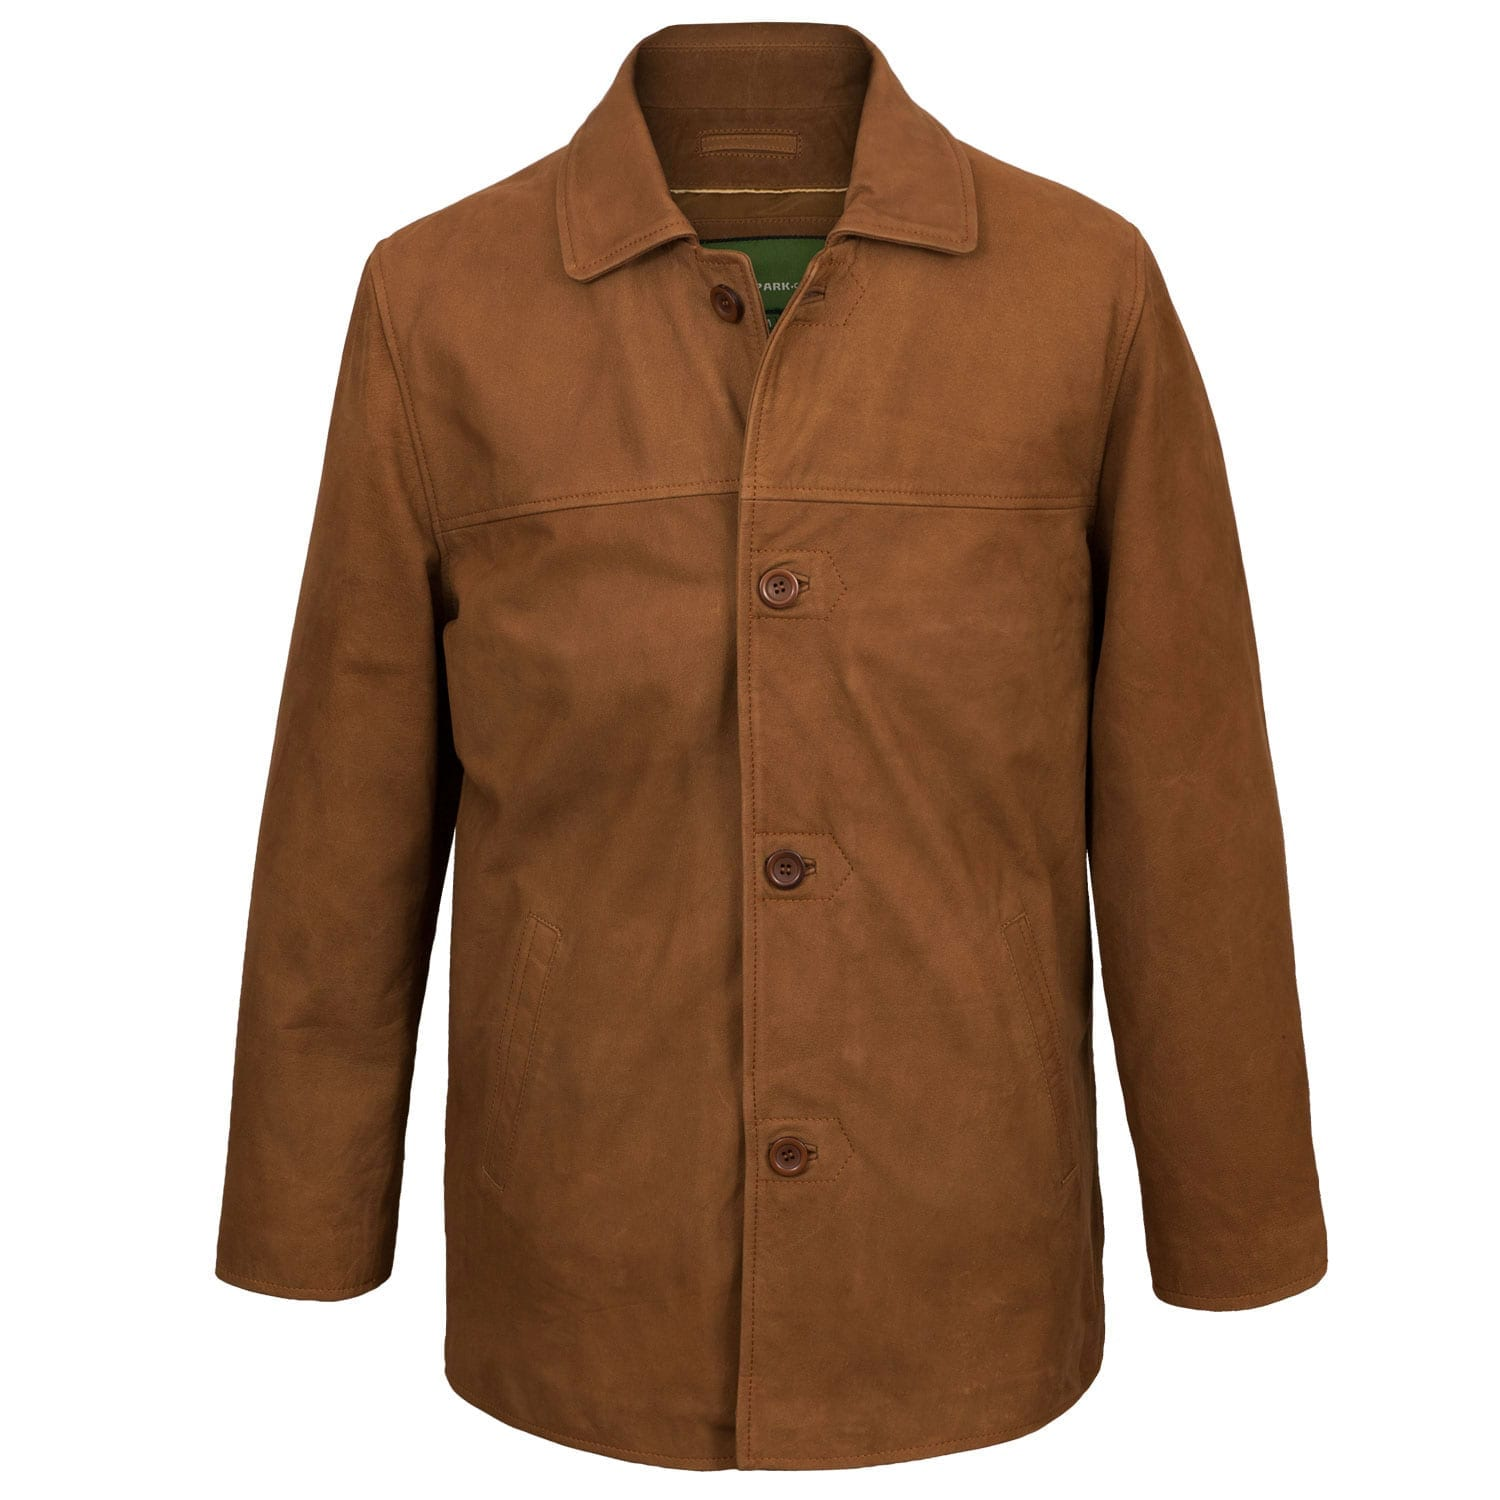 Mens Tan Leather Coat Barton